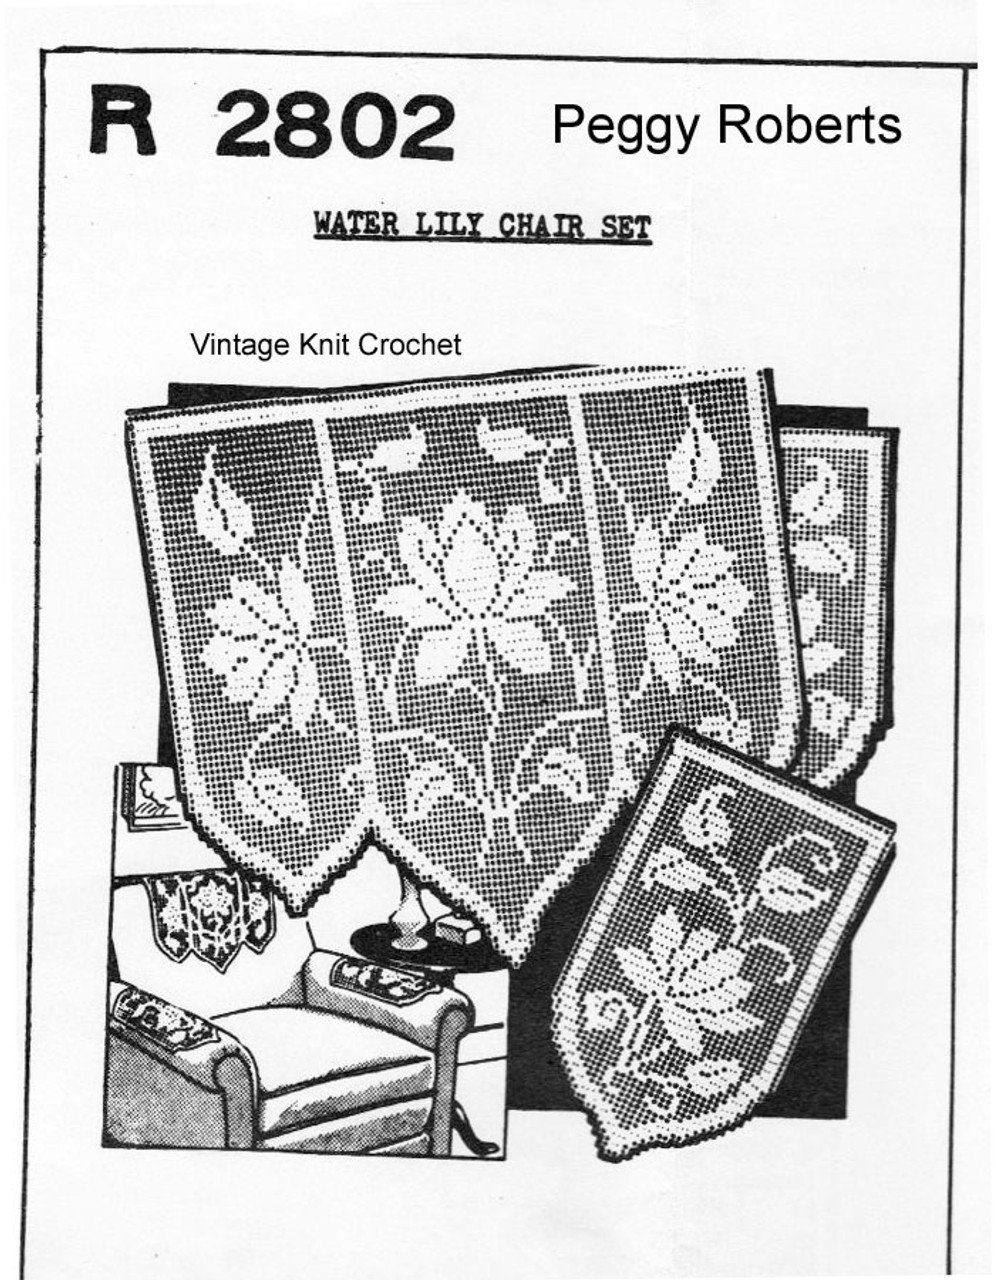 Filet Crochet Water Lily Chair Doily, Peggy Roberts 2802